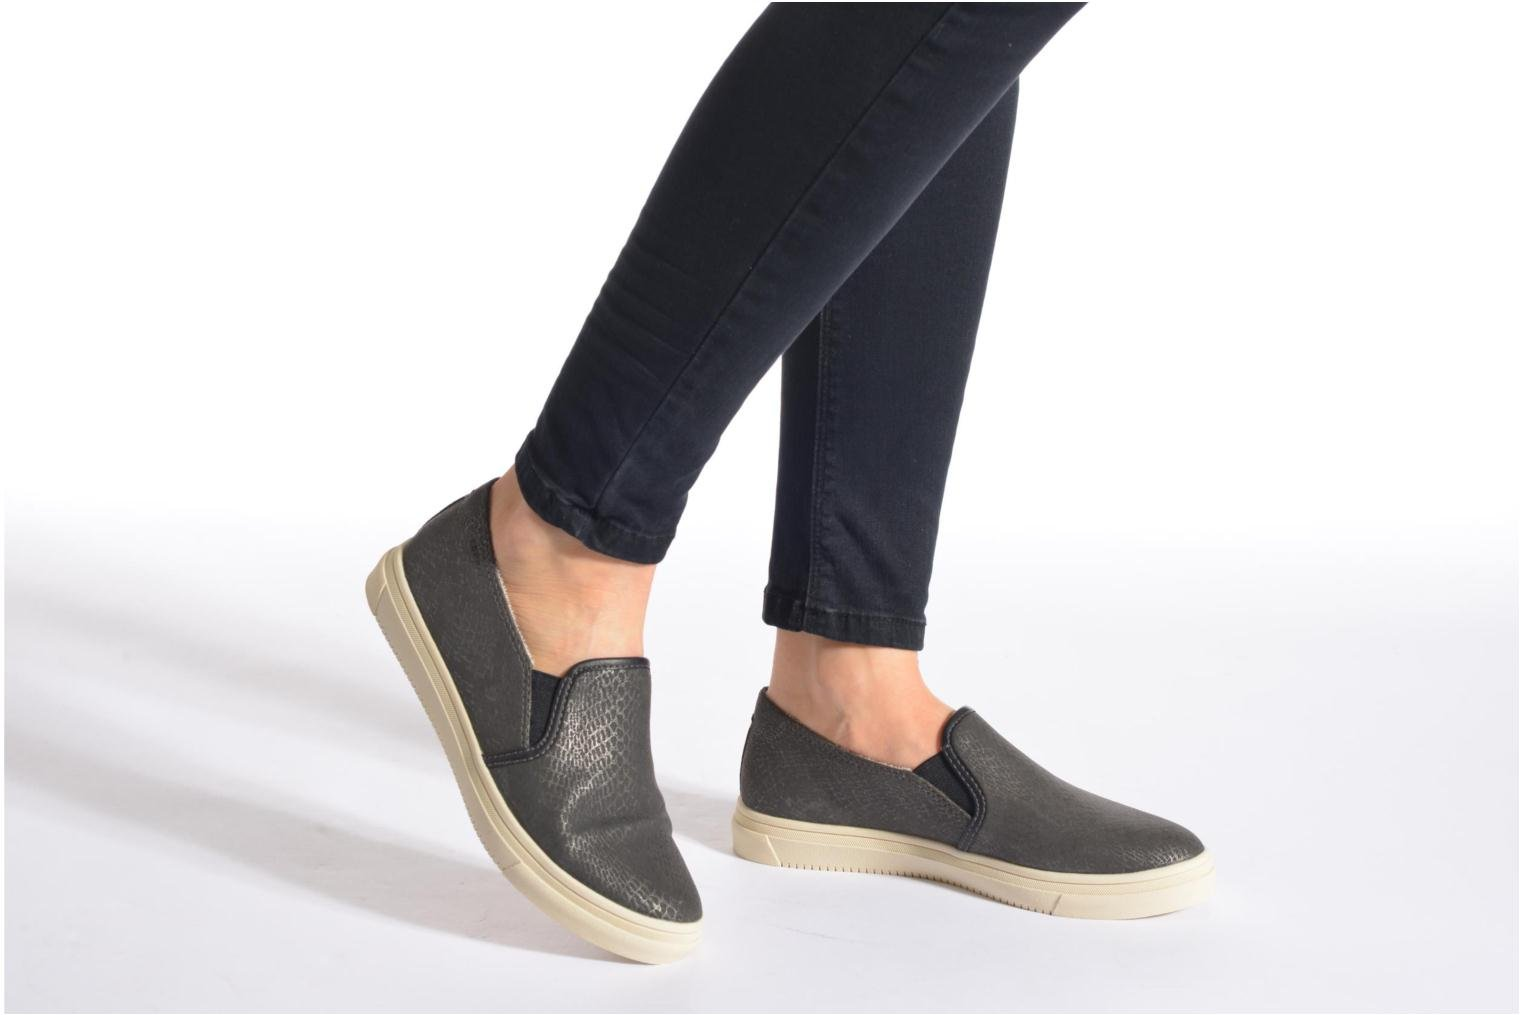 Trainers Esprit Yendis Slip on 009 Black view from underneath / model view